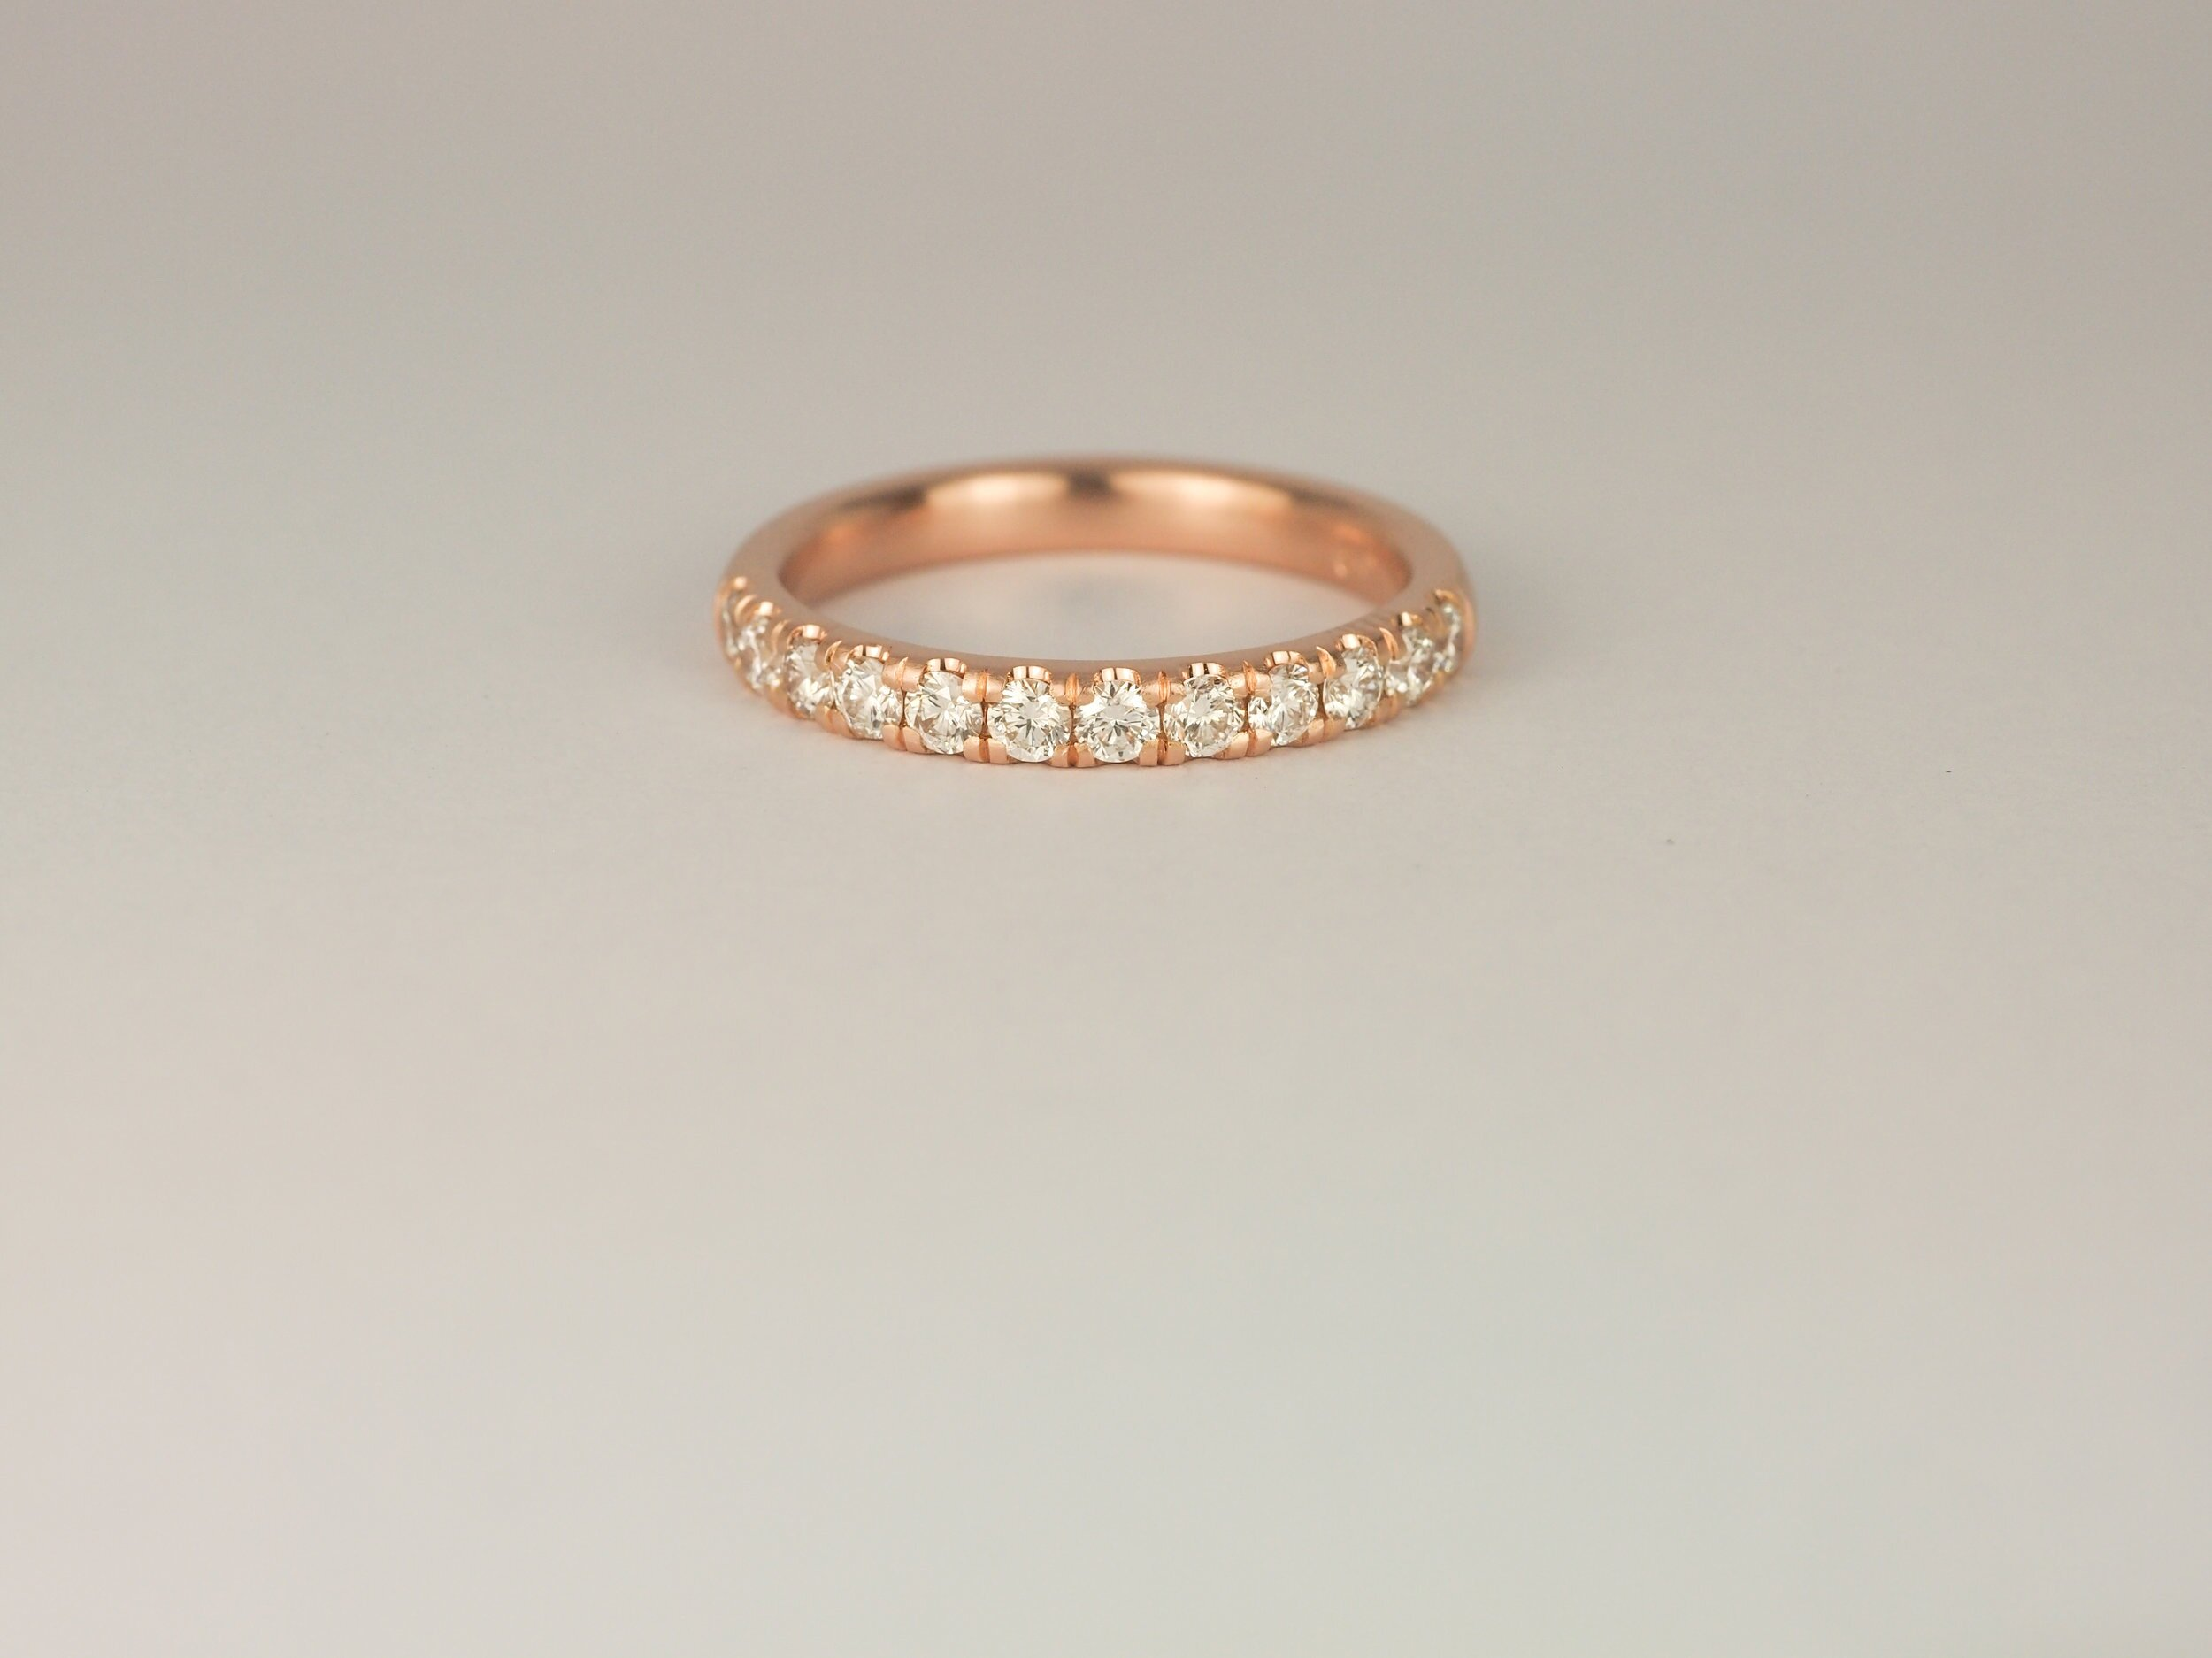 Micro pavé diamond band in rose gold